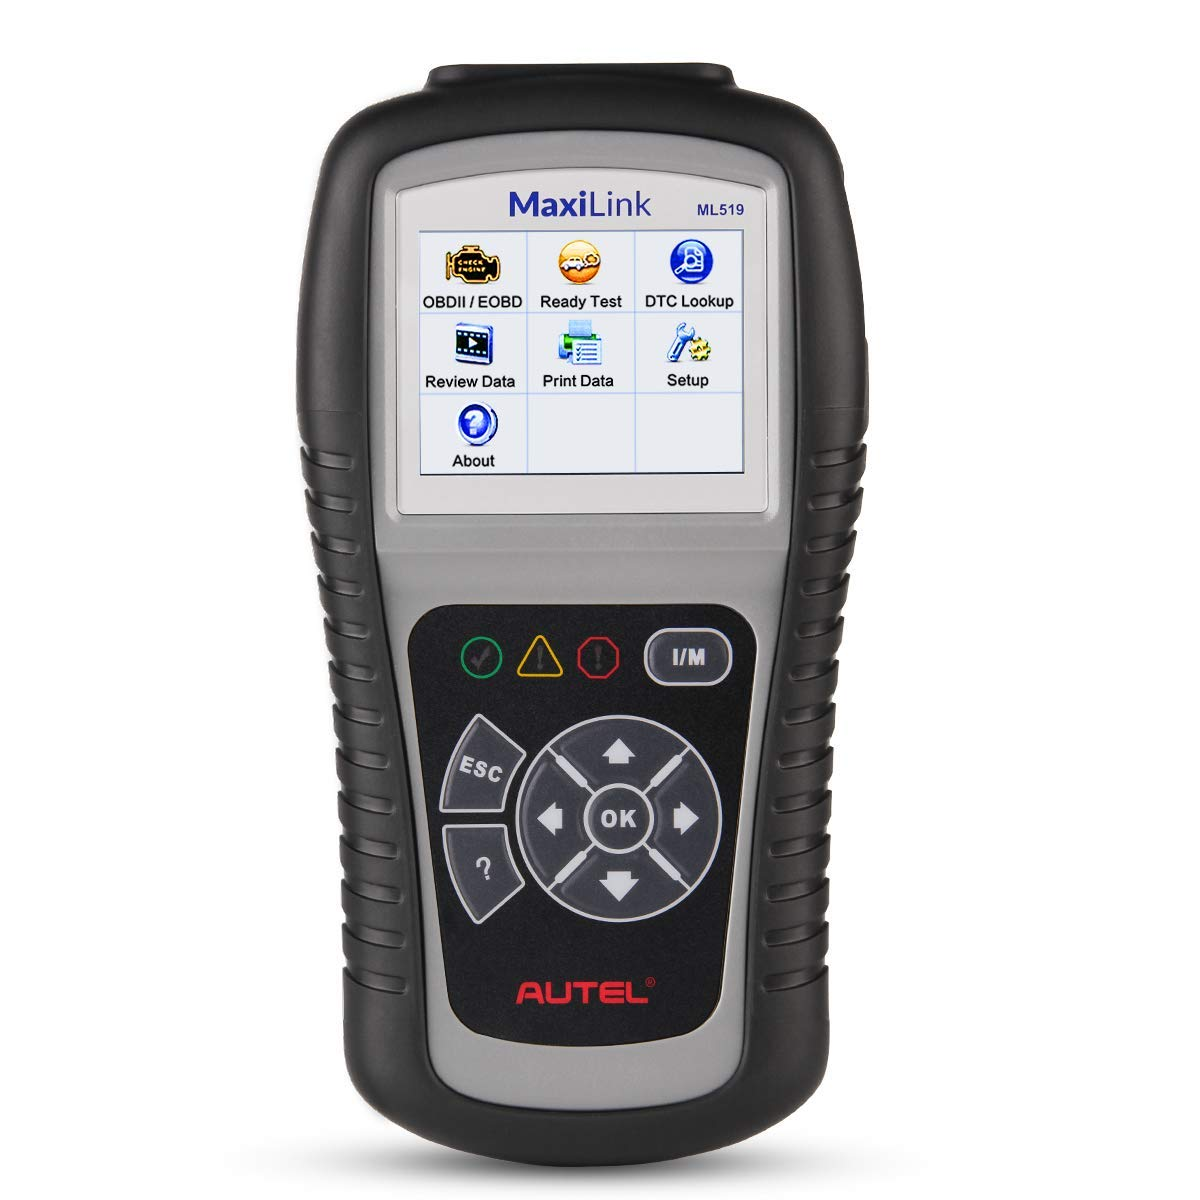 Autel MaxiLink ML519 OBDII/EOBD Scanner Enhanced OBD II Mode 6,Code Reader with The Same Function as al519